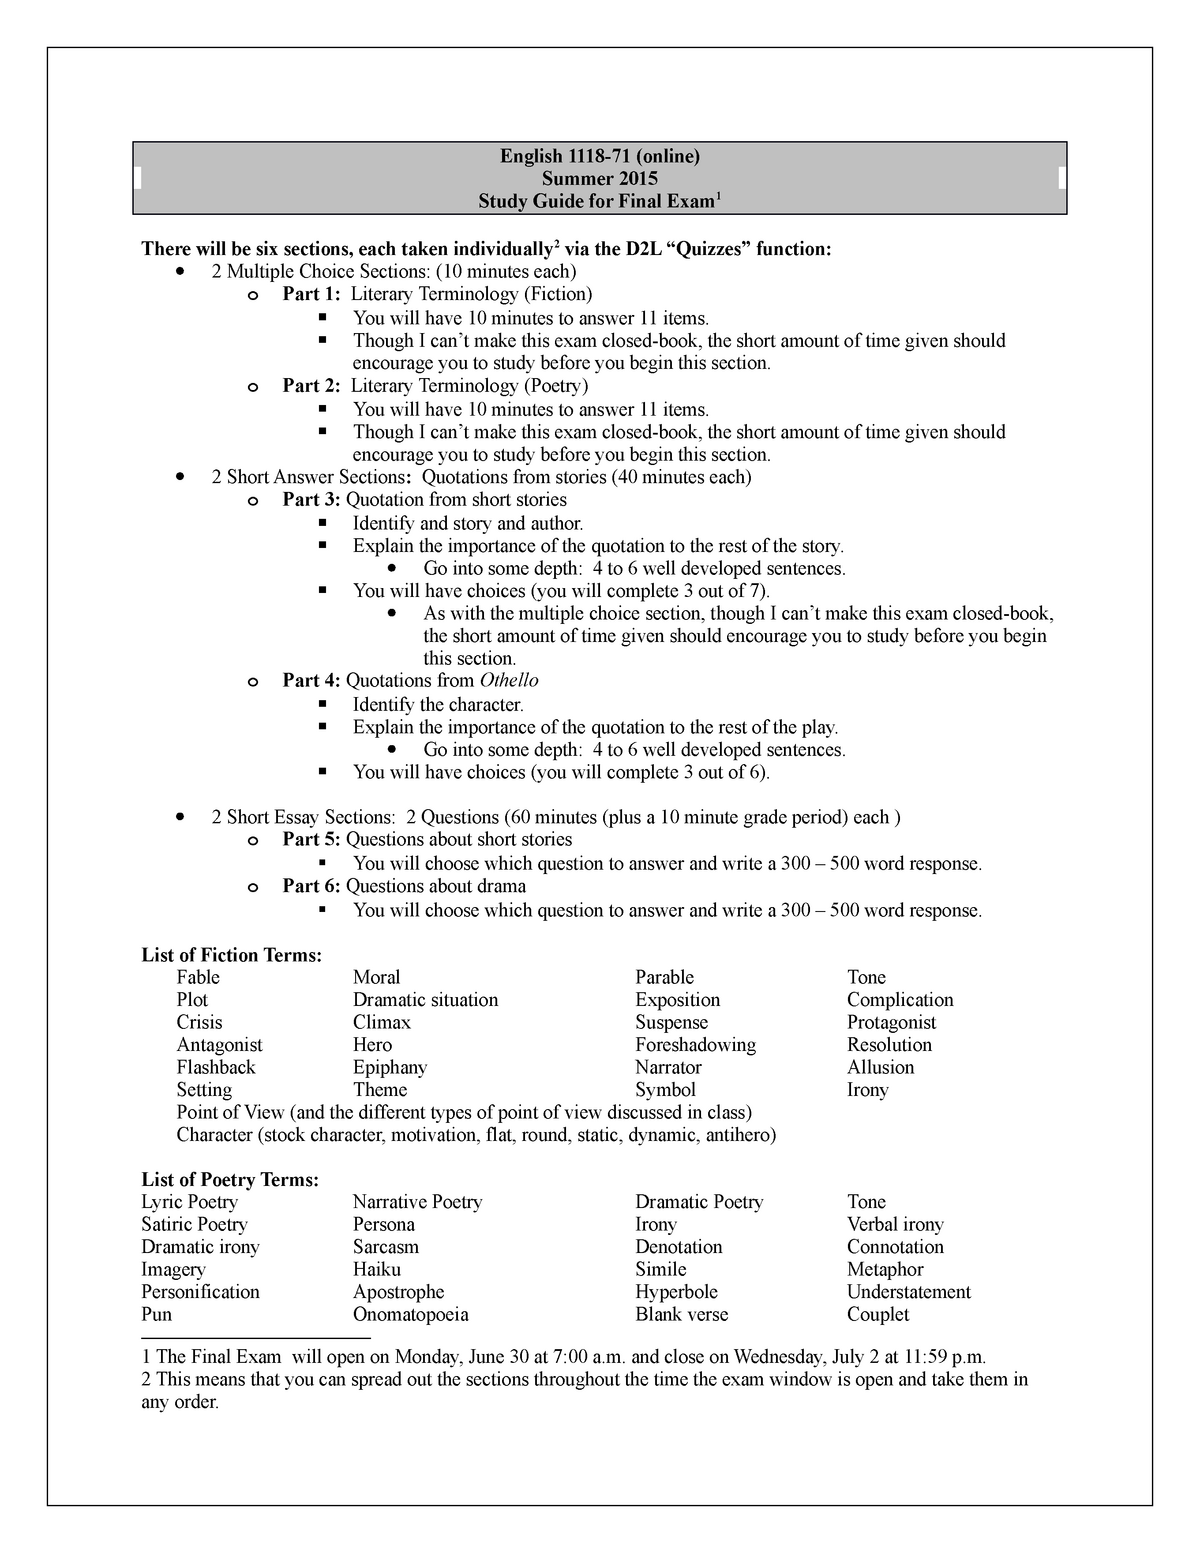 A List Of Fables And Their Morals final exam study guide - english 1118 - reading and writing